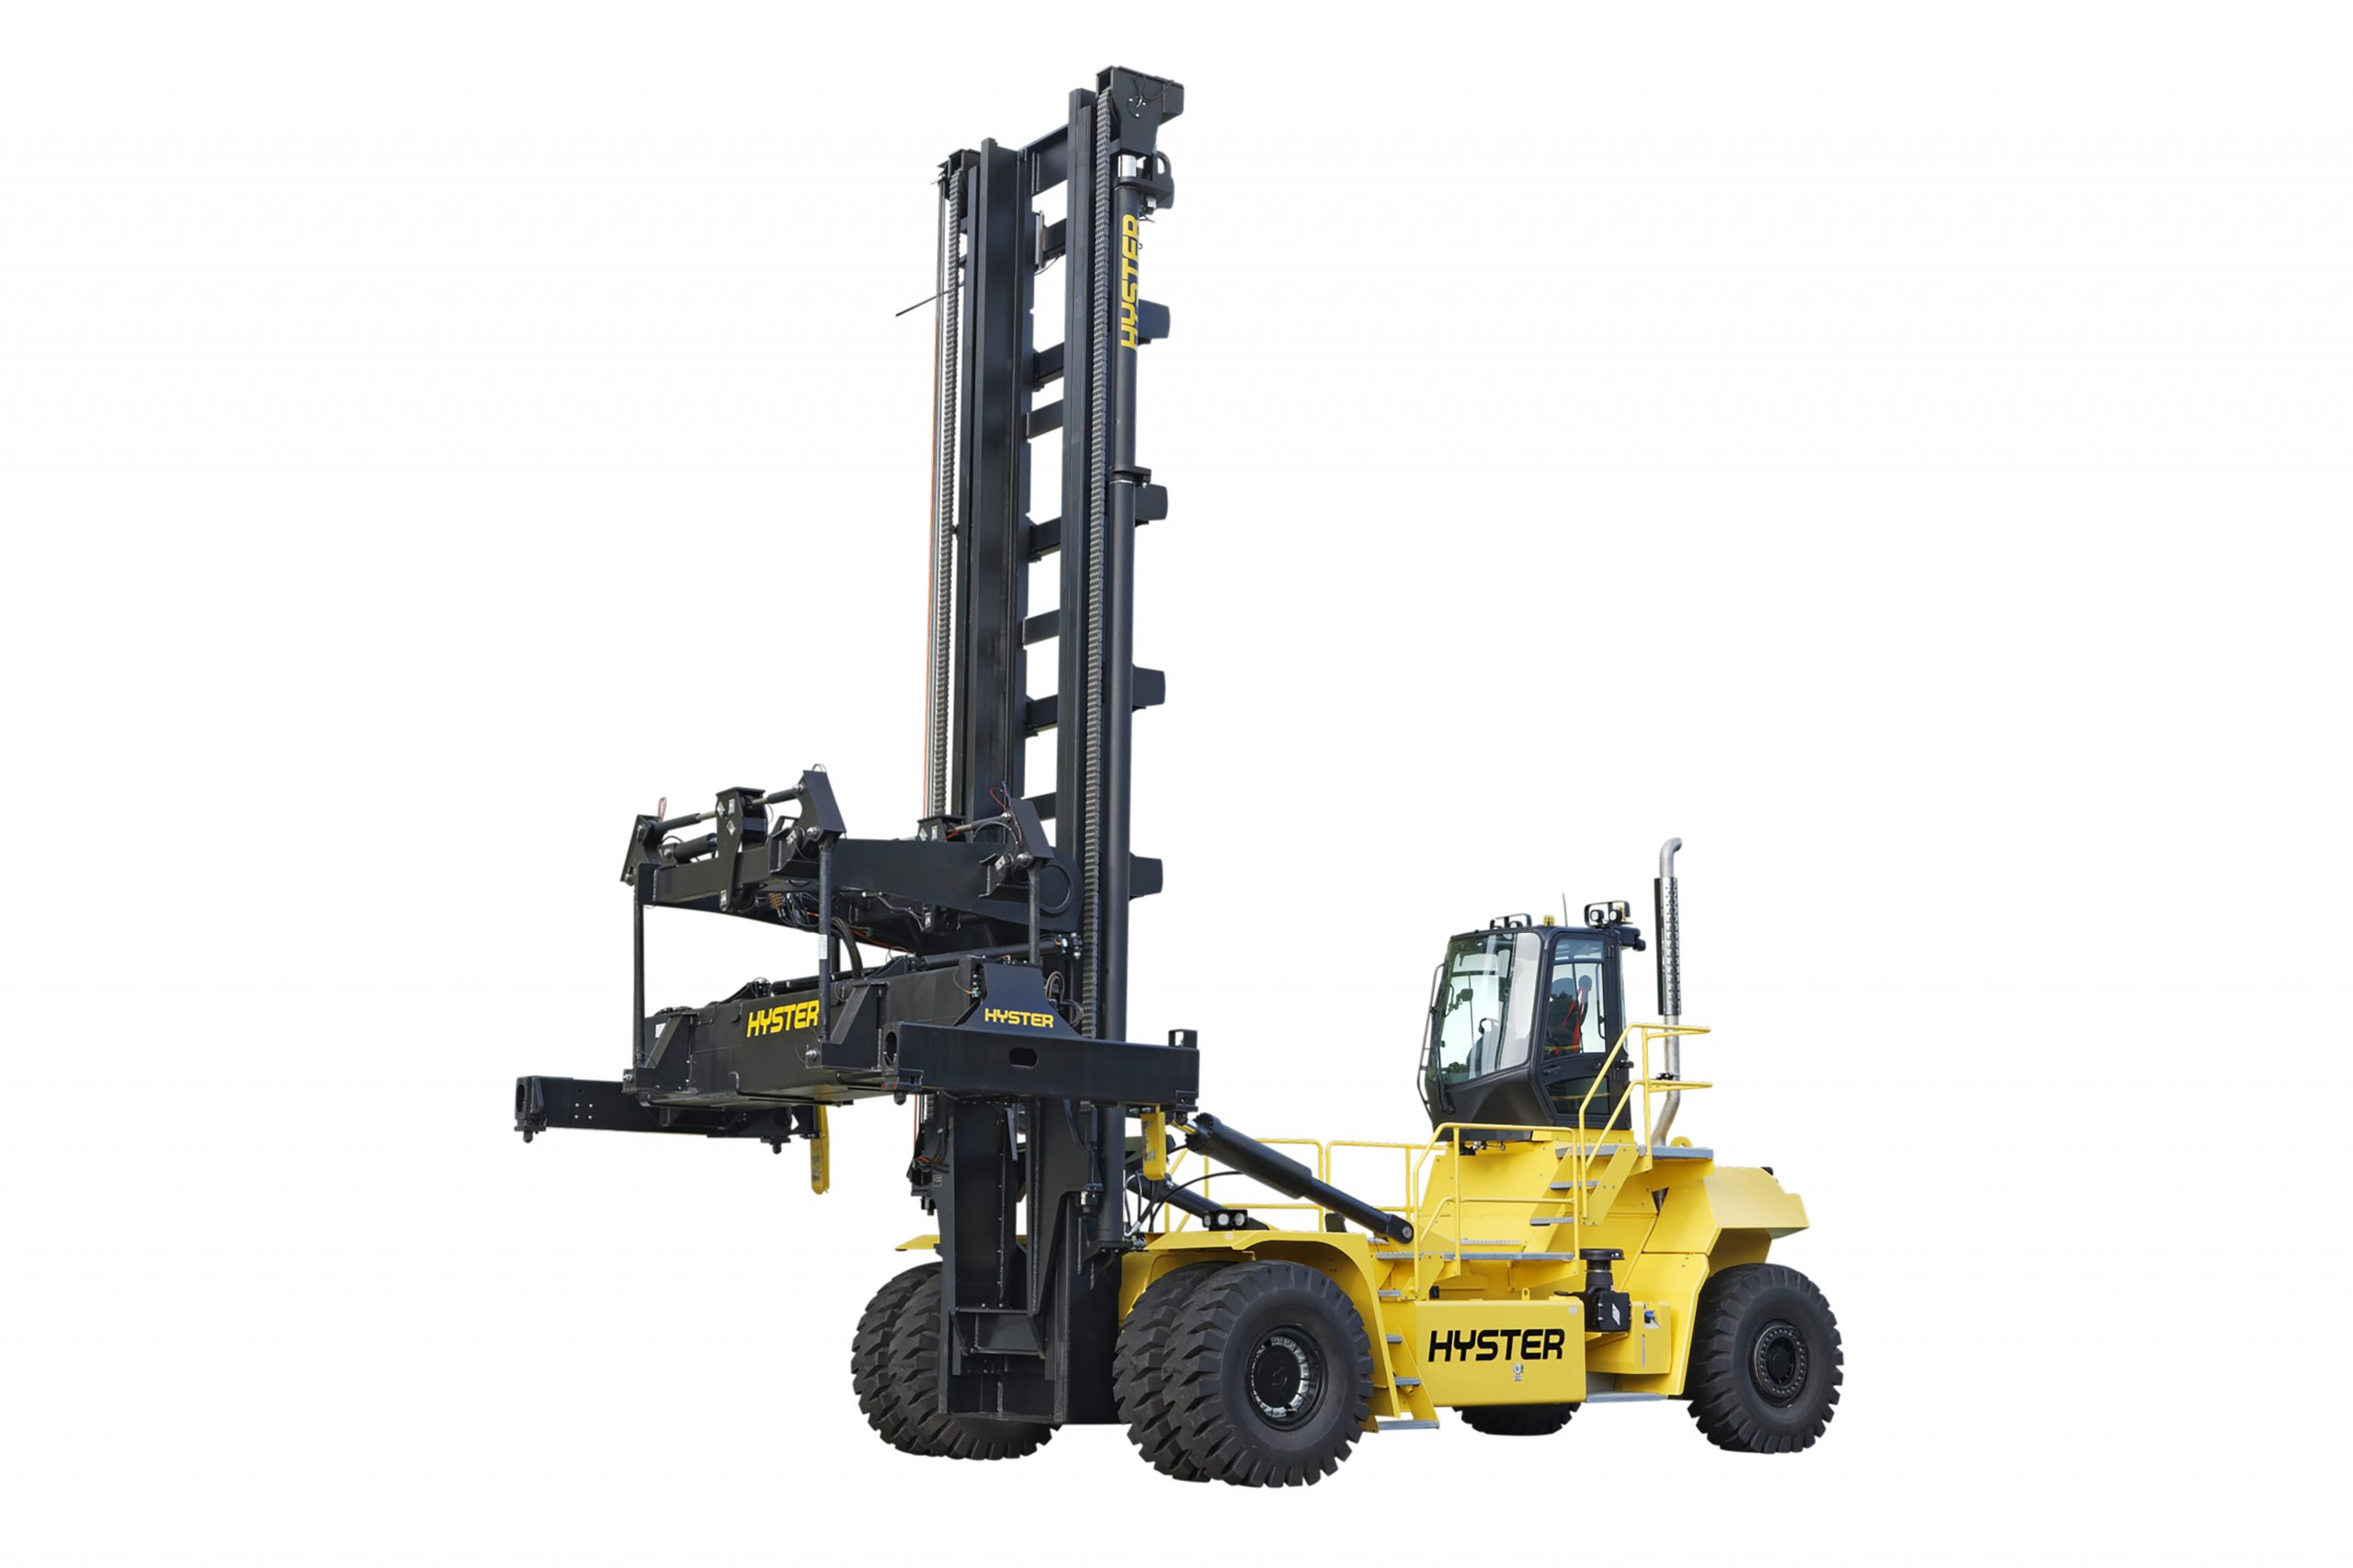 Hyster Europe has launched a new top lift Laden Container Handler that is expected to increase productivity in busy ports and terminals, in line with increasing demands.